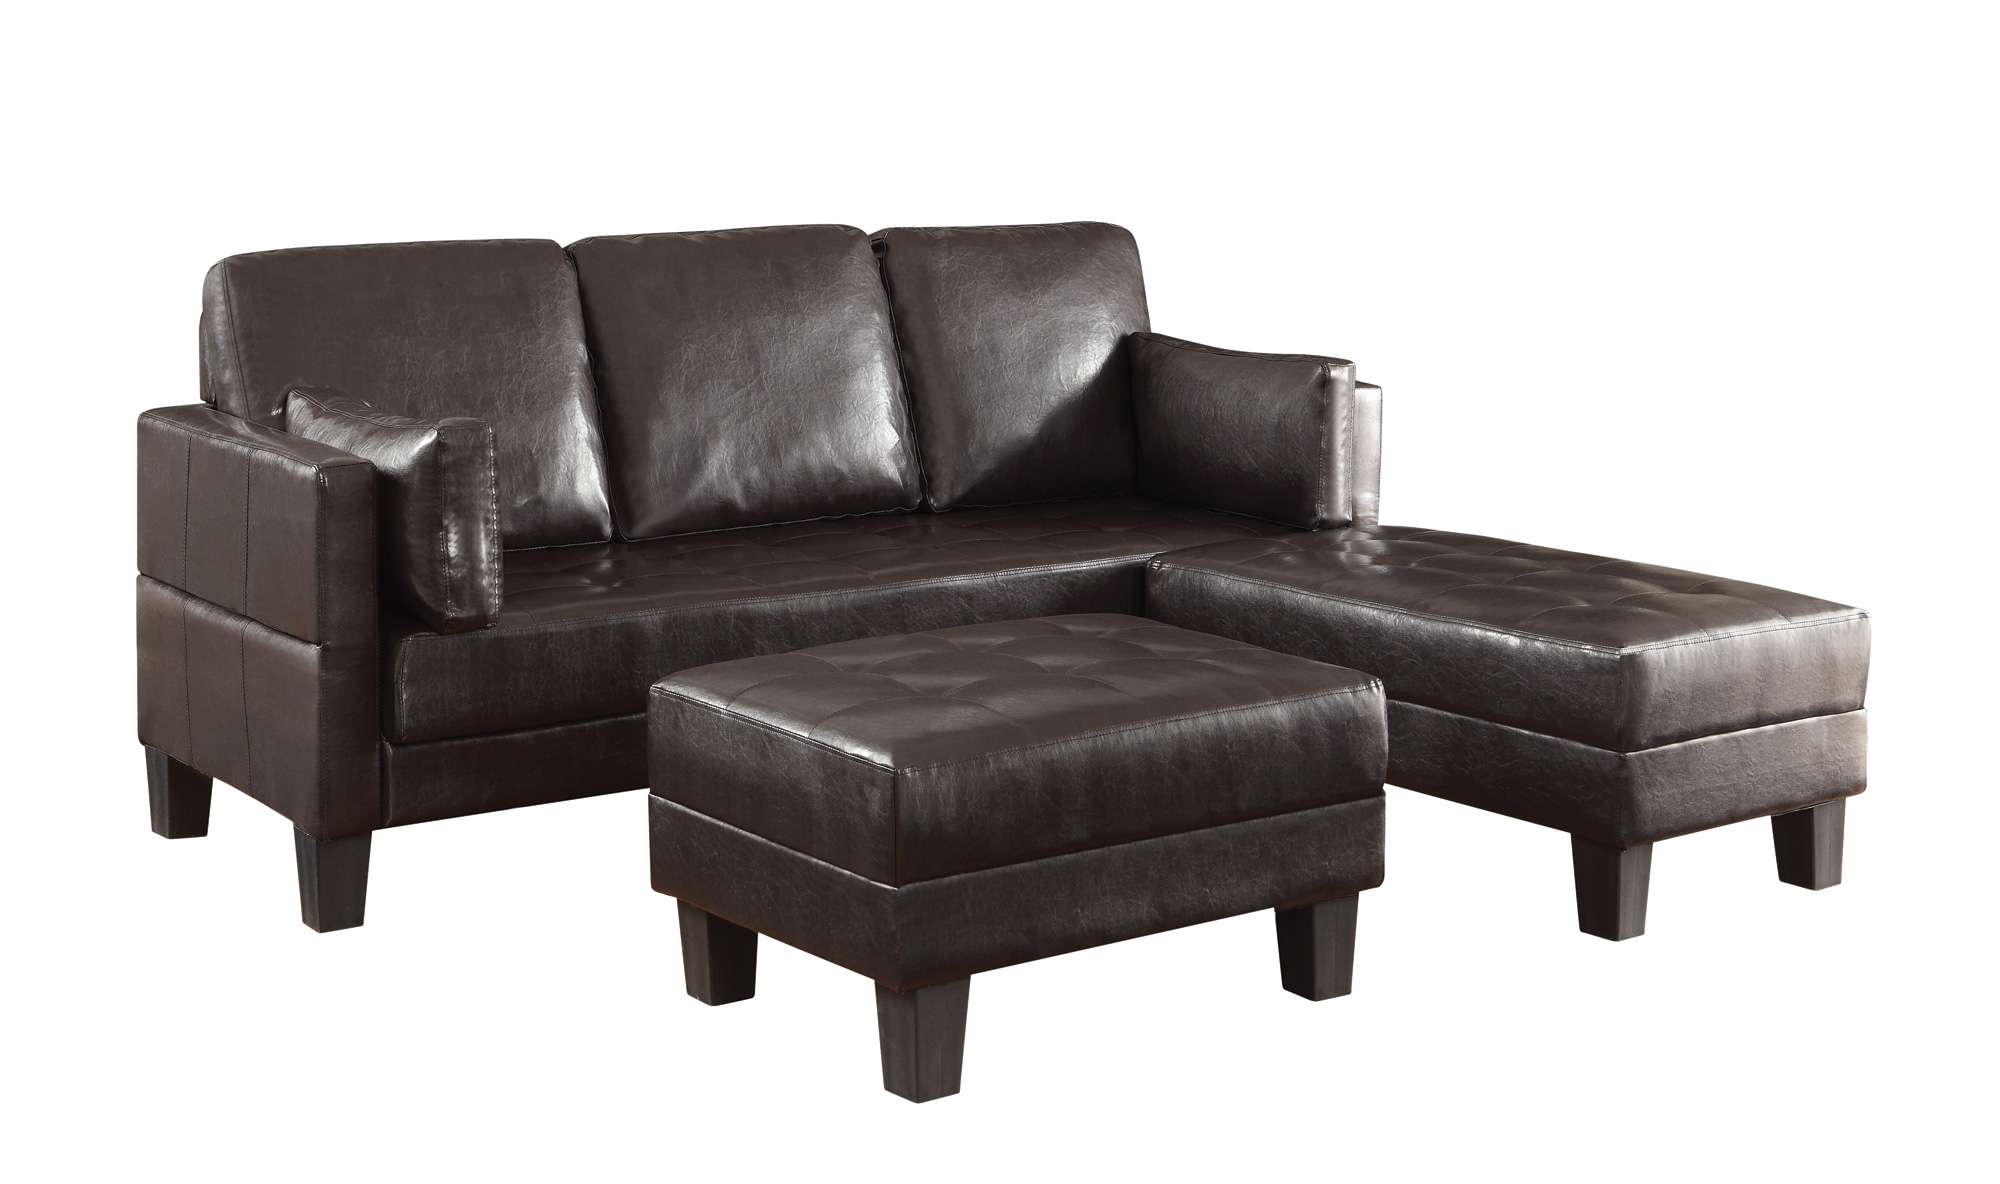 Coaster Ellesmere Brown Faux Leather Contemporary Sofa Bed with 2 ...